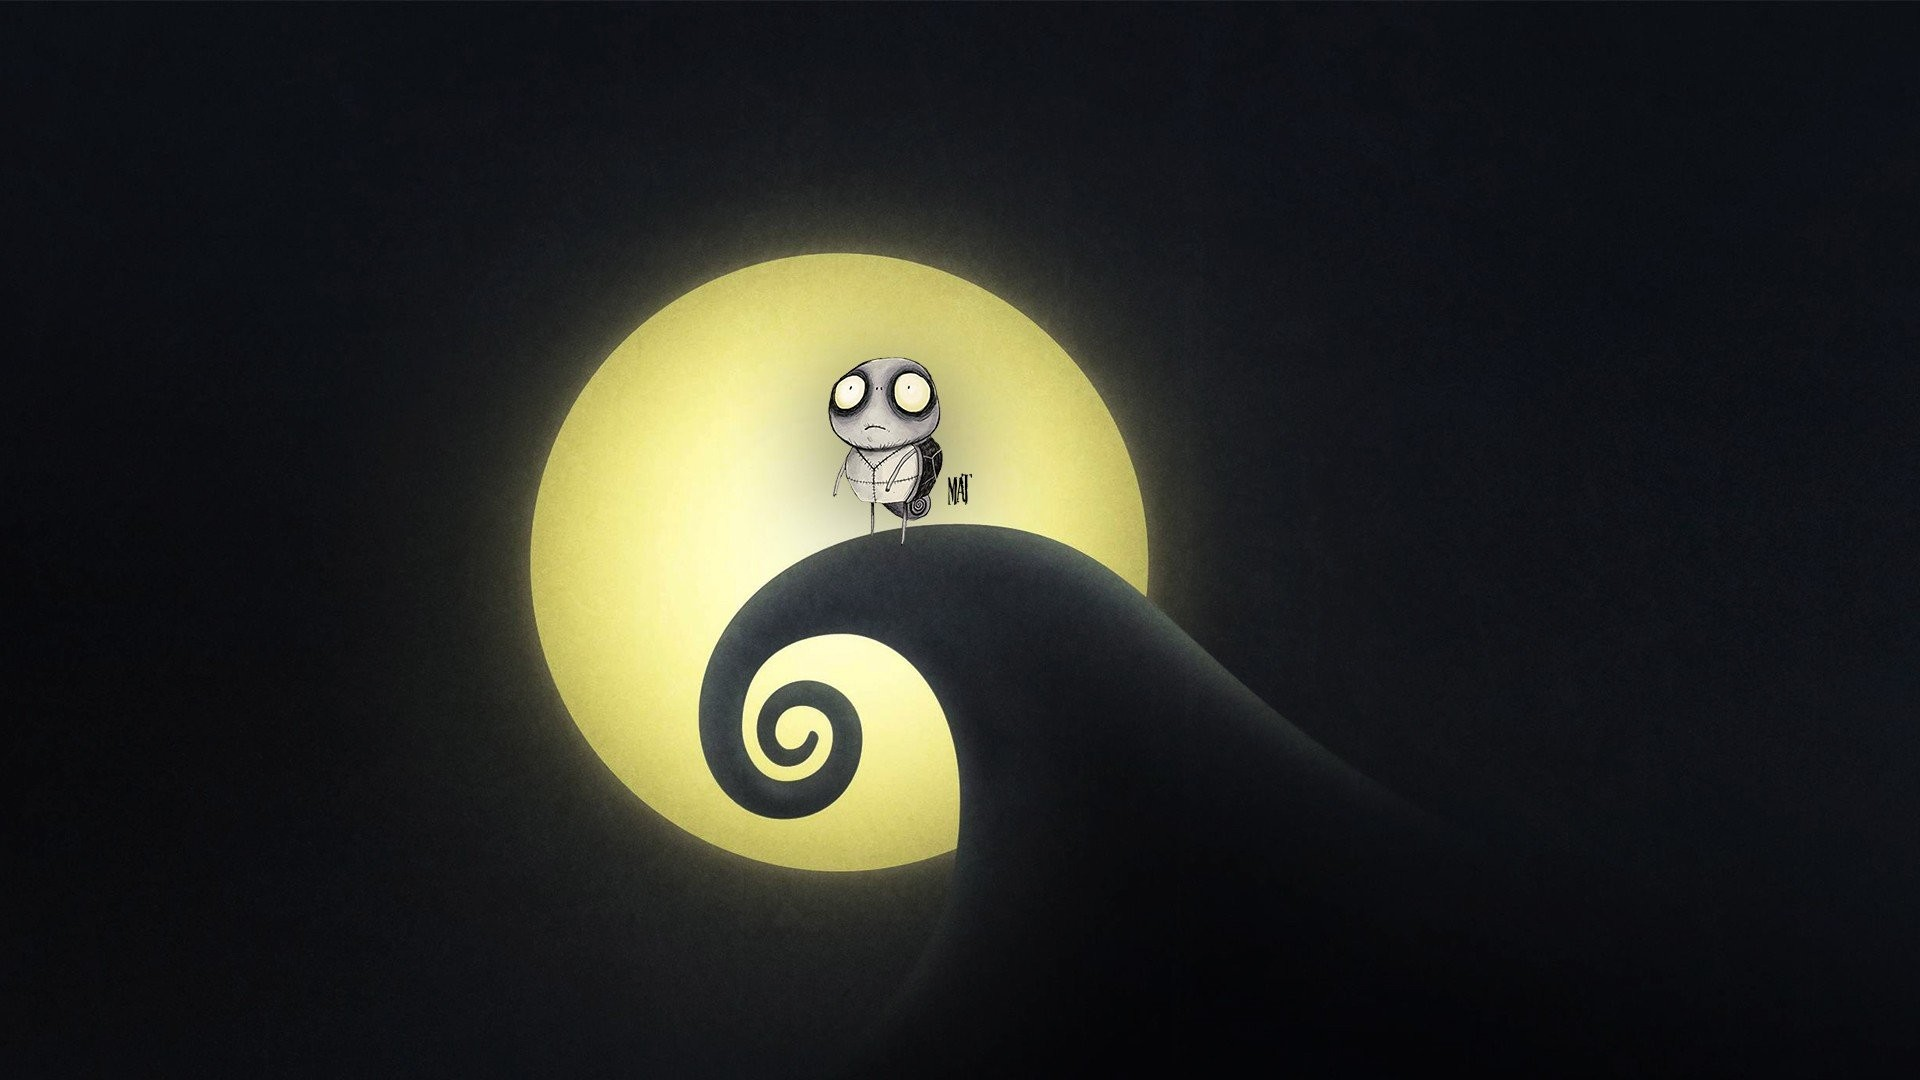 1920x1080 Tim Burton, Nightmare, Shadow, Lights Wallpapers HD / Desktop and Mobile  Backgrounds